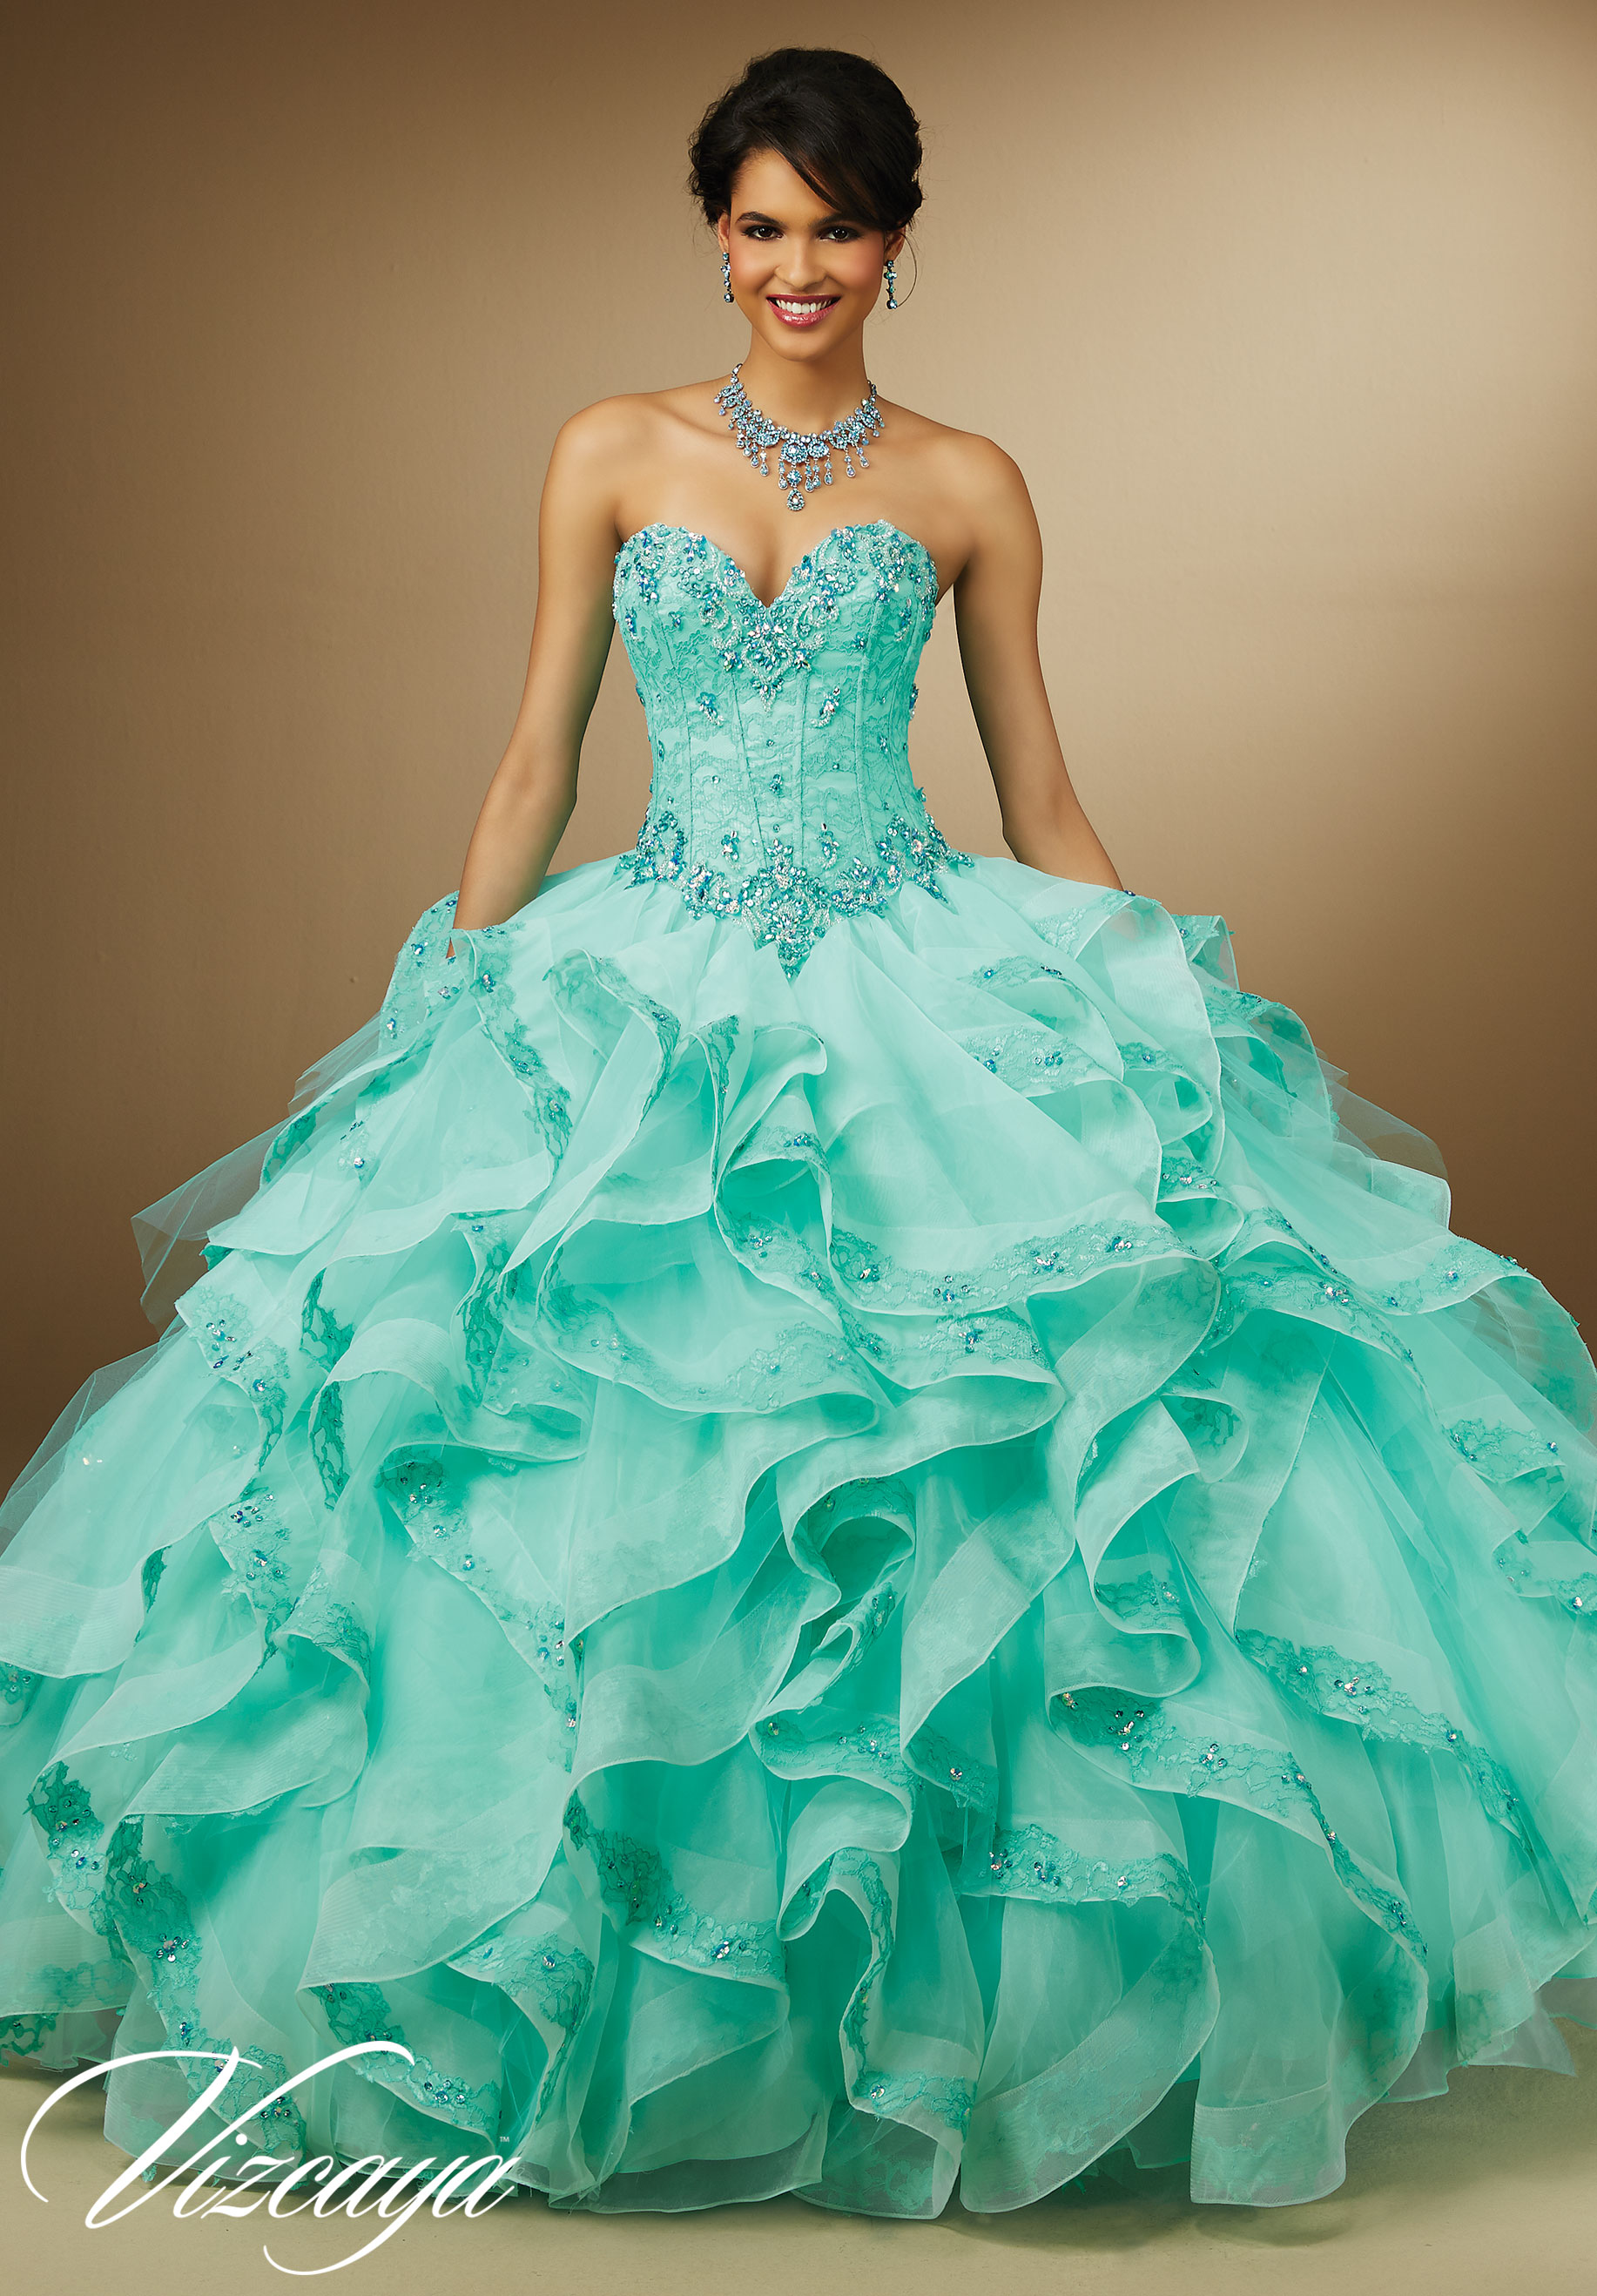 Modern Dresses For A Sweet 16 Party Photos - All Wedding Dresses ...